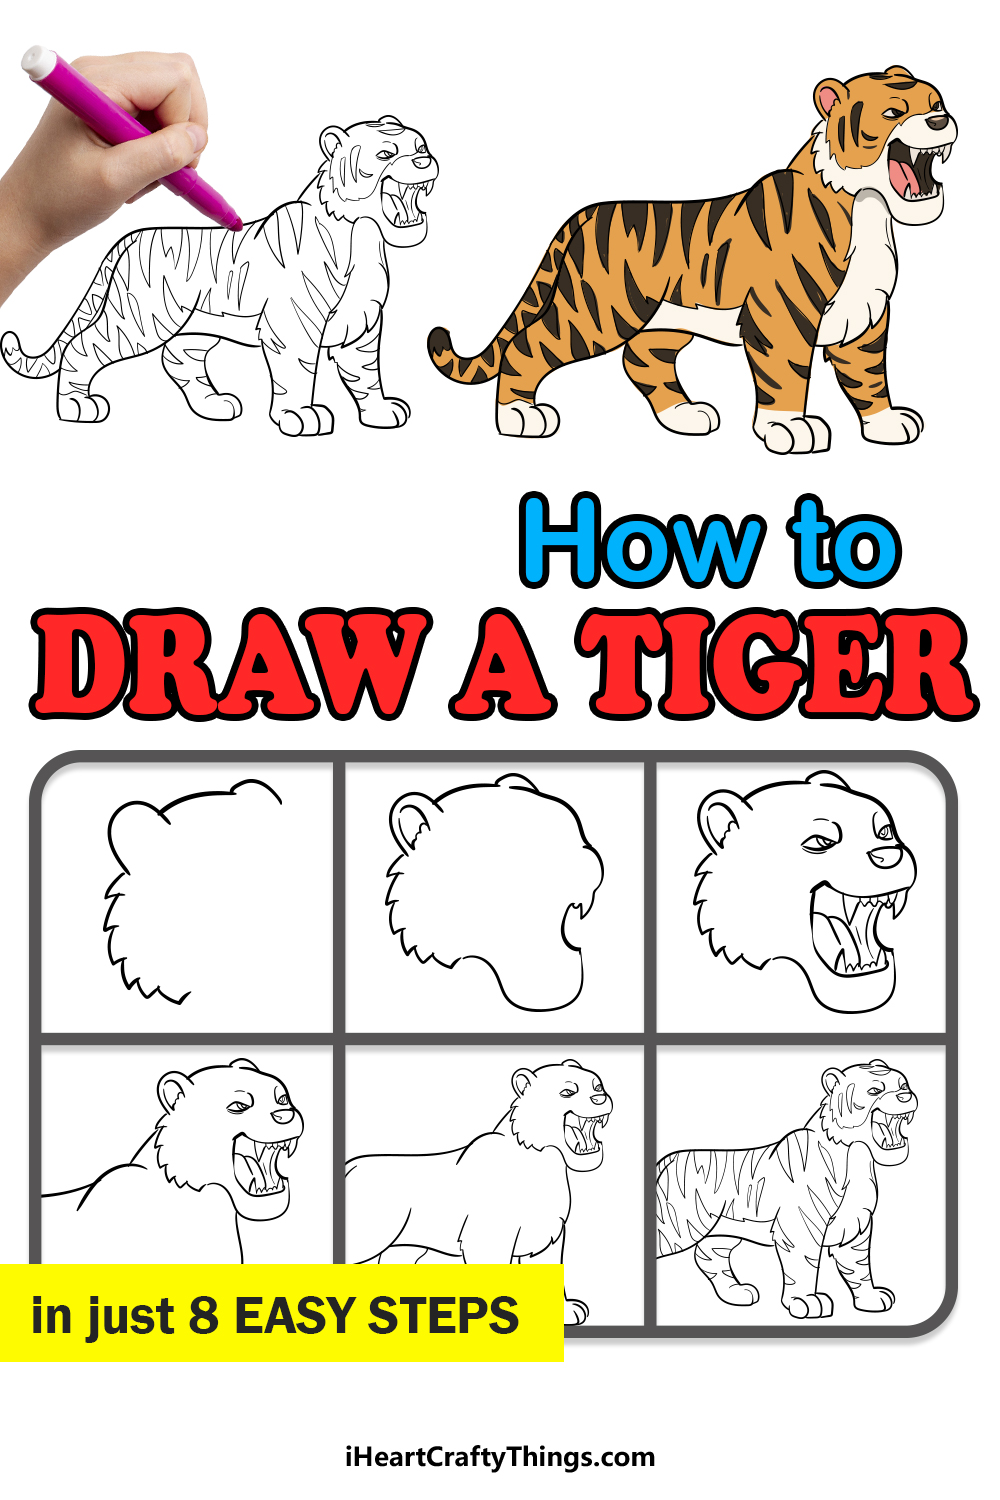 how to draw a tiger in 8 easy steps